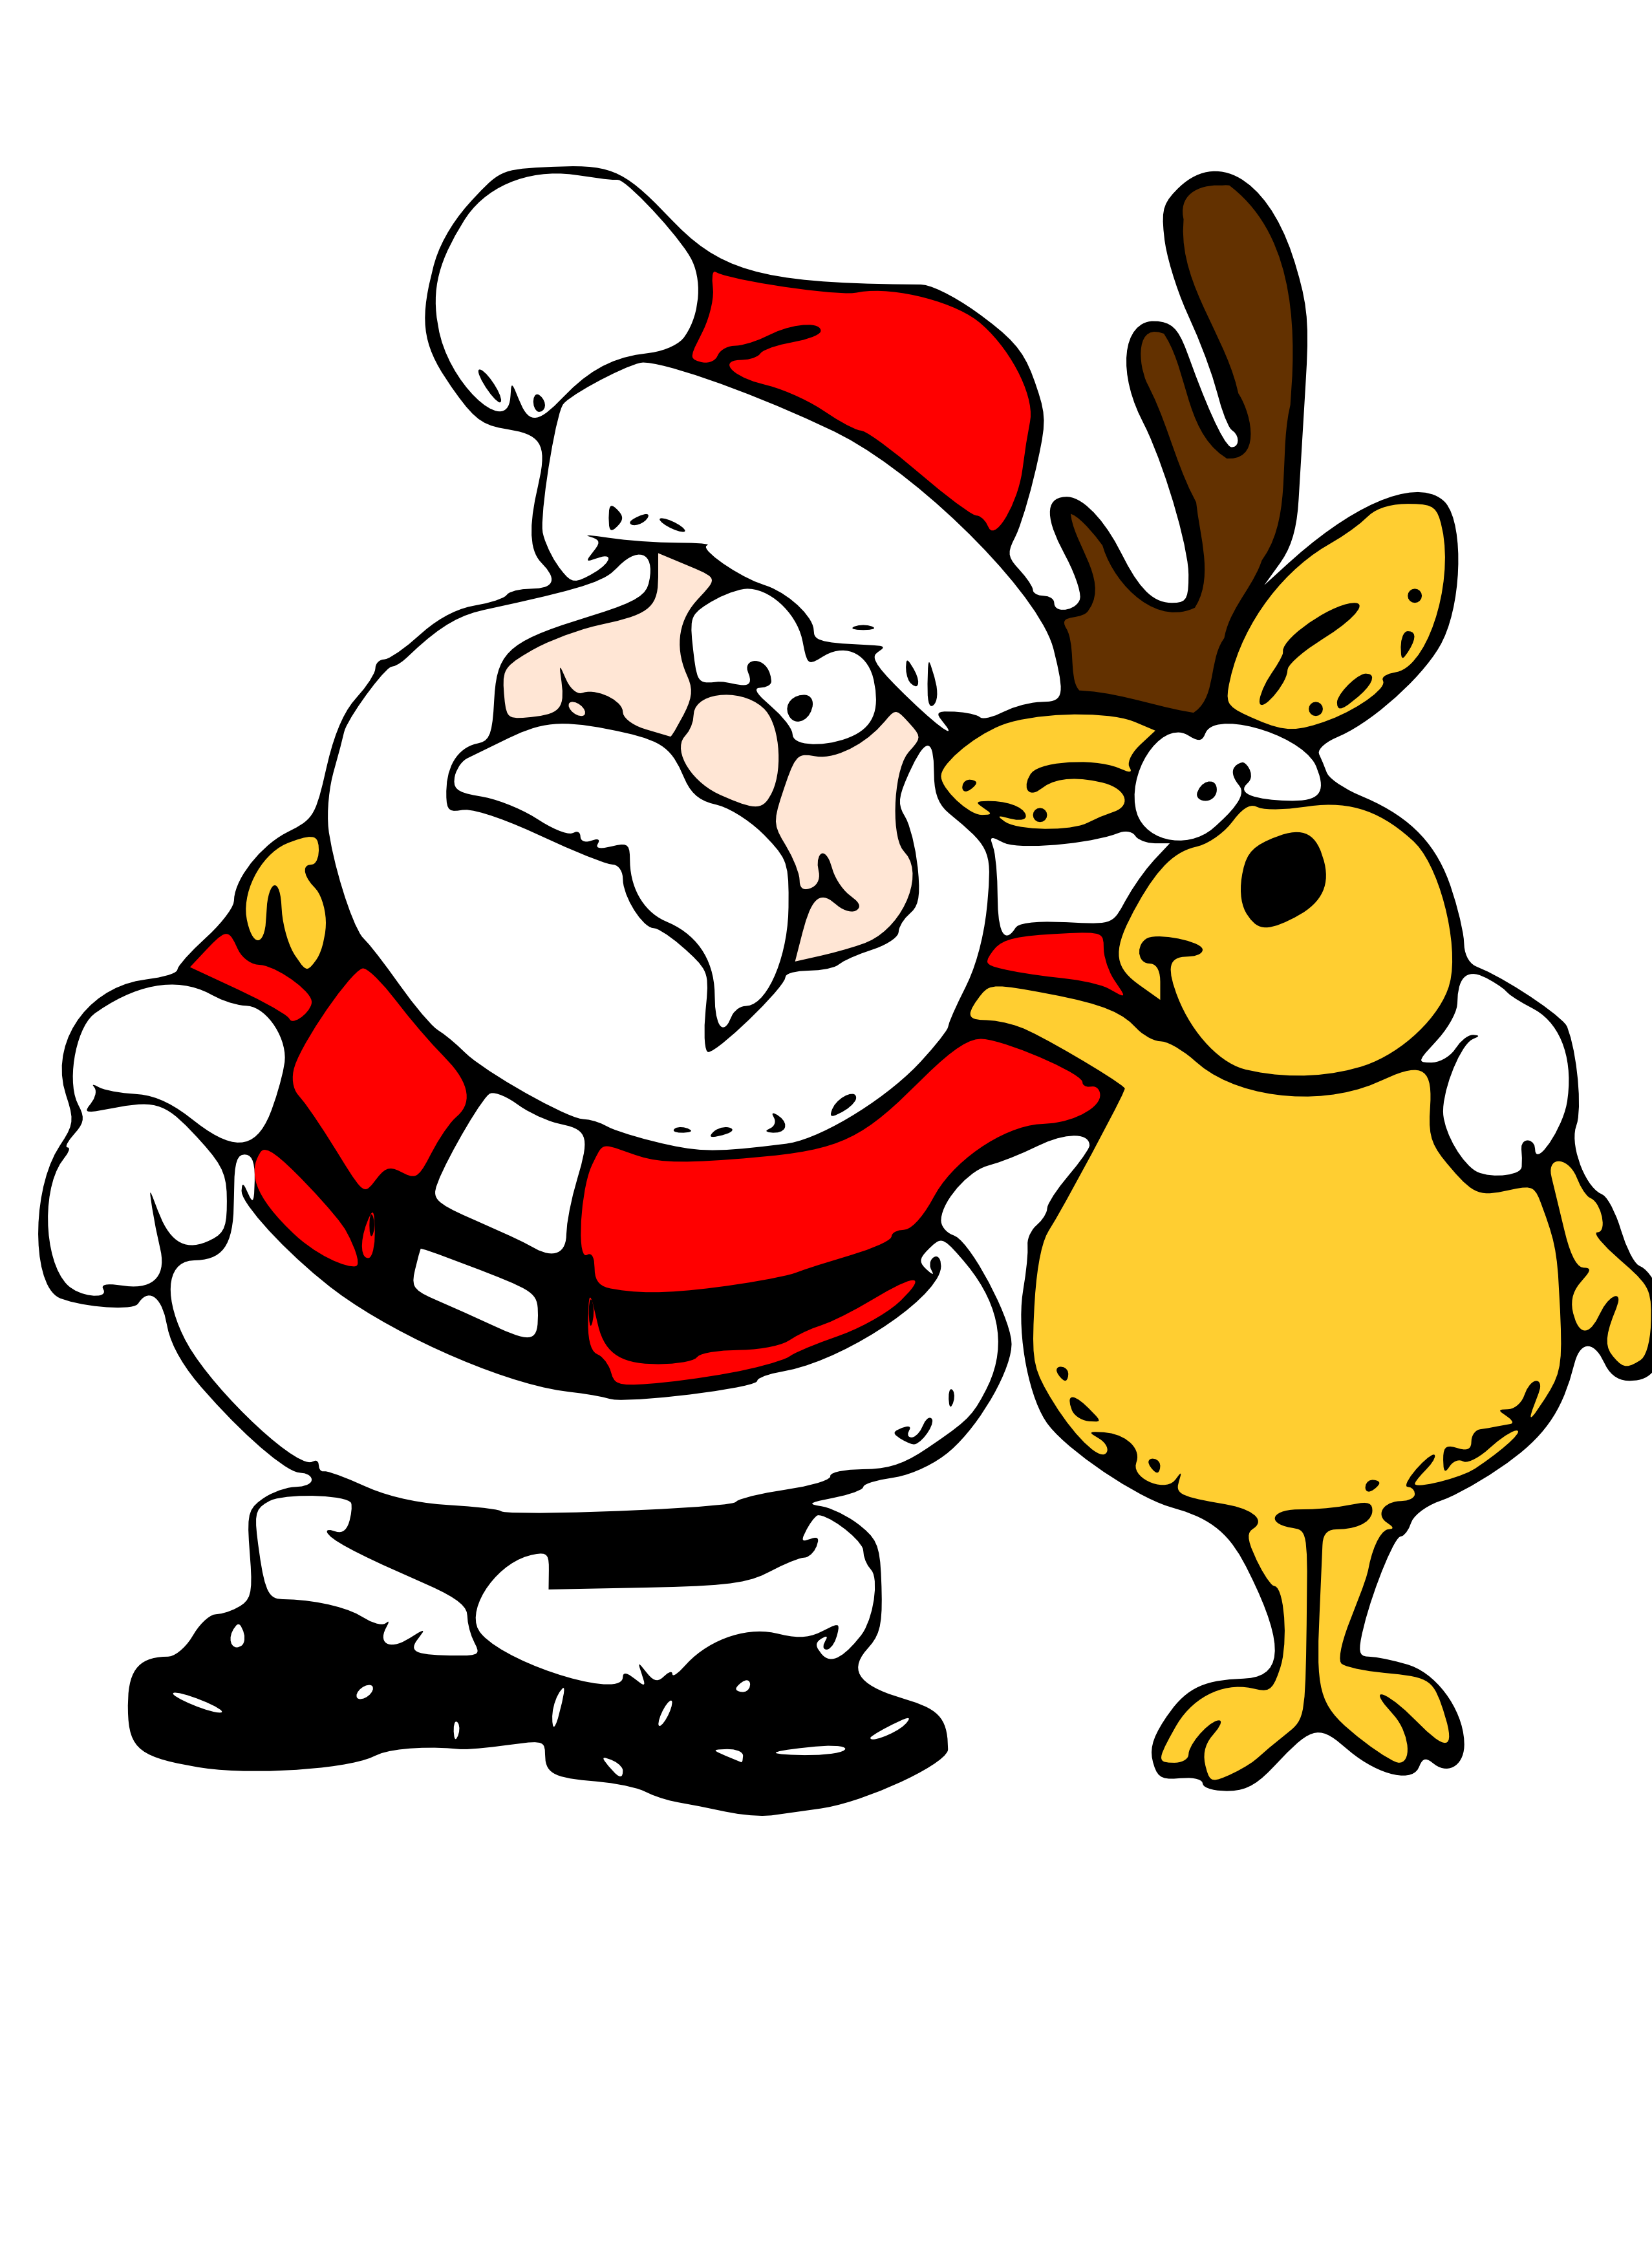 Xmas collection clip art. Missions clipart secret pal